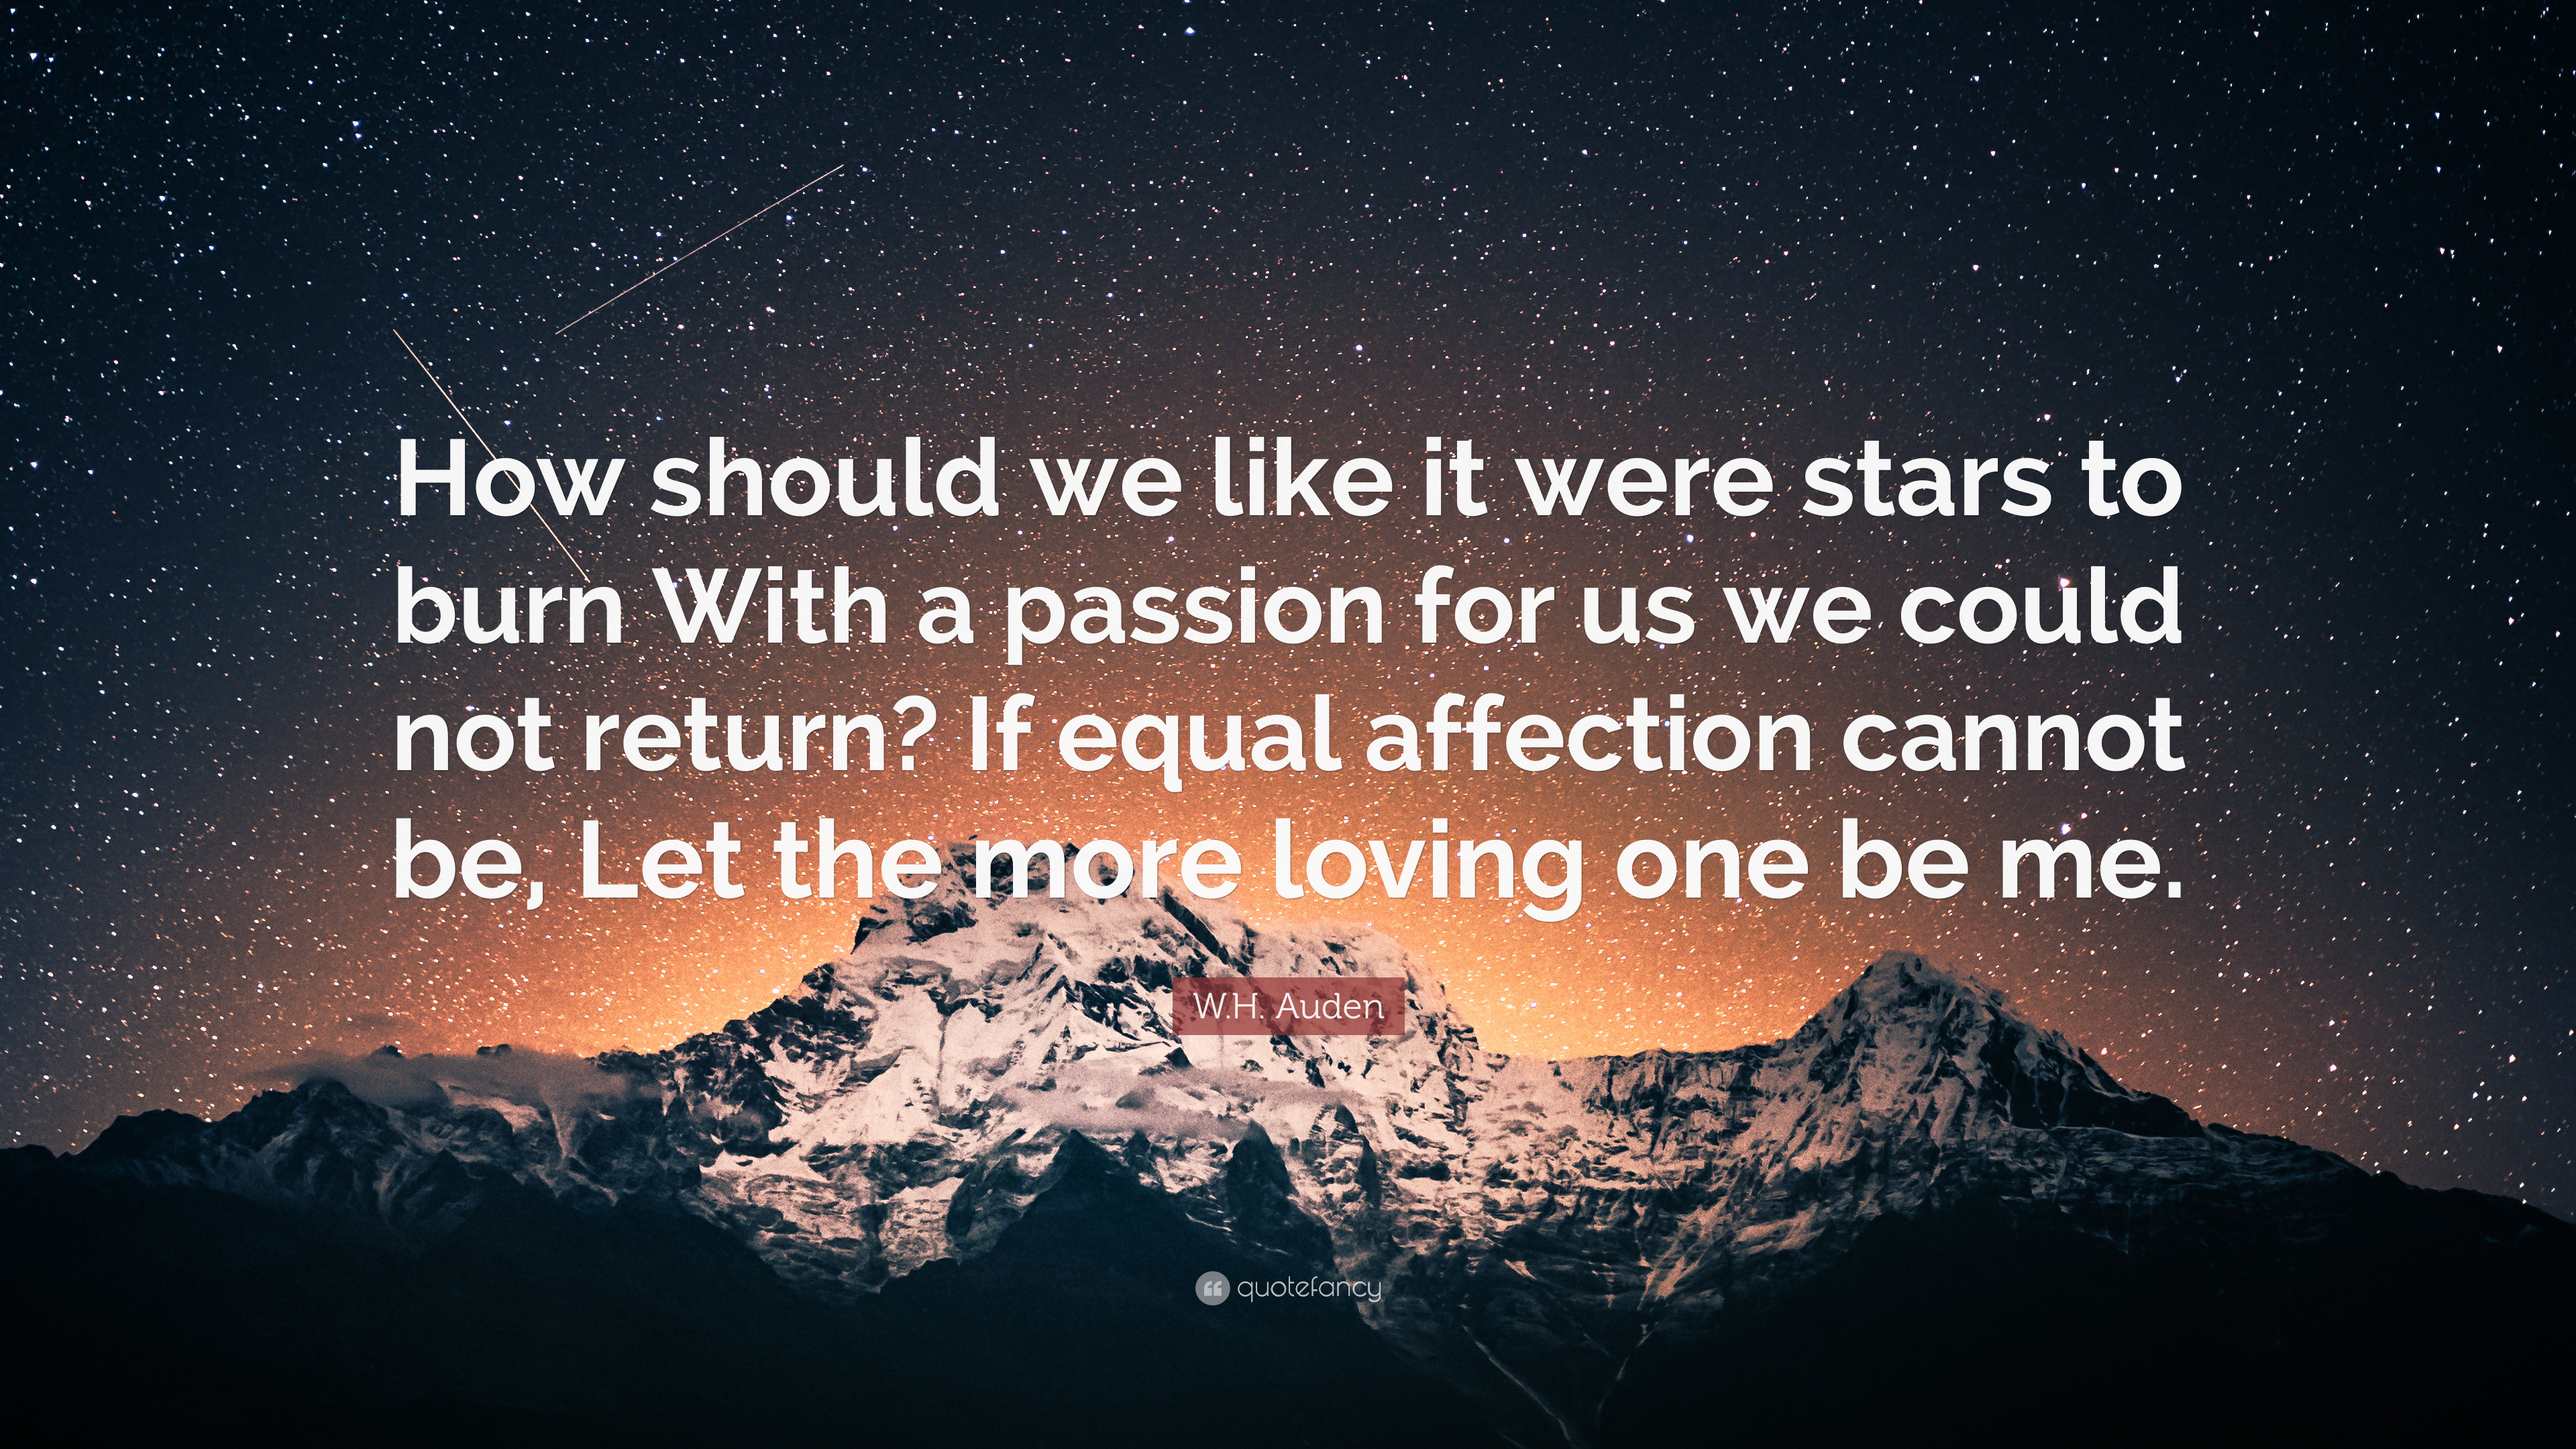 Wh Auden Quote How Should We Like It Were Stars To Burn With A